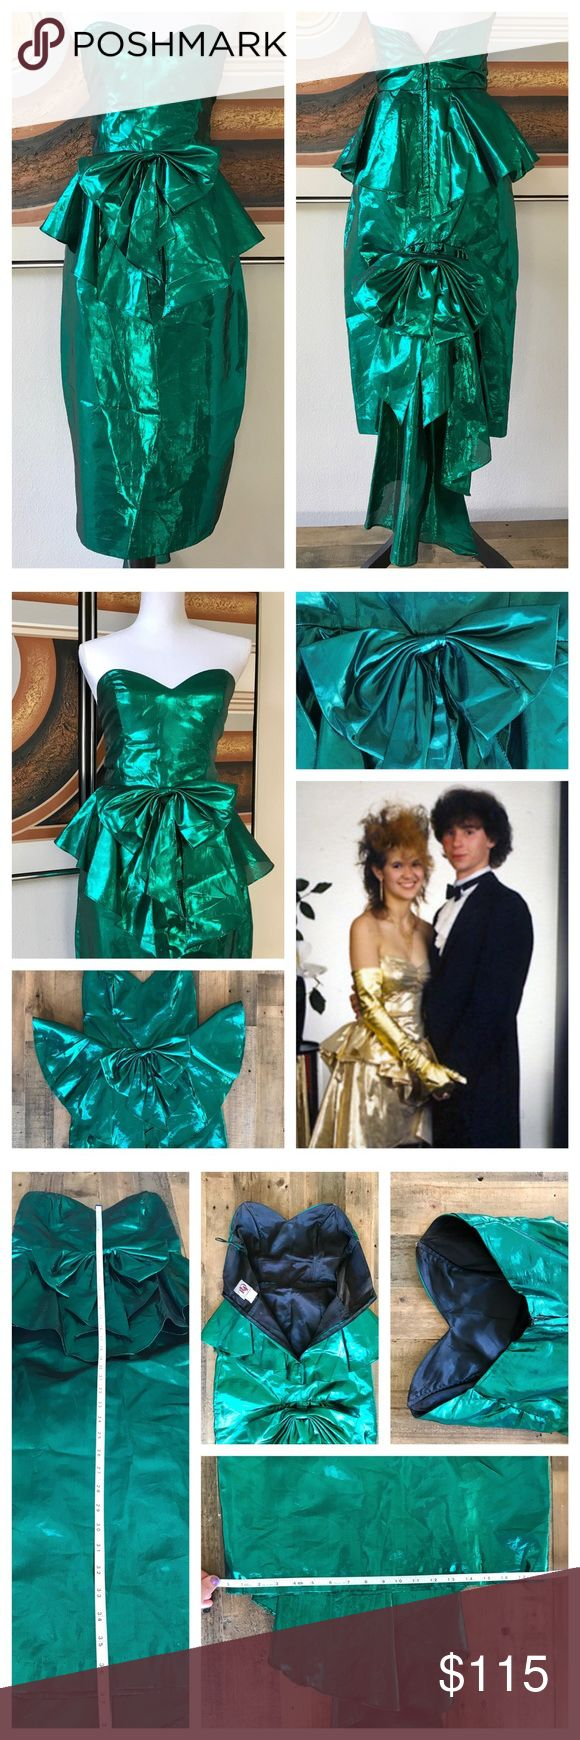 Vintage 80s Metallic Green Mermaid Dress XS STUNNING emerald green 80s mermaid prom dress! Strapless, midi skirt w/peplum & bow accents (front & back) & a train. Brand Eletra (TD4). 70% poly/30% METAL! Best guess: modern 2/XS, but pls check measurements. EUC, OAK, RAD. Like it stepped right out of 16 Candles. Truly a beauty to behold. I've held onto this baby for long enough – now it's time for her to party like it's 1984! Sexy, bustier, retro, flashback, bachelorette, party, cocktail…